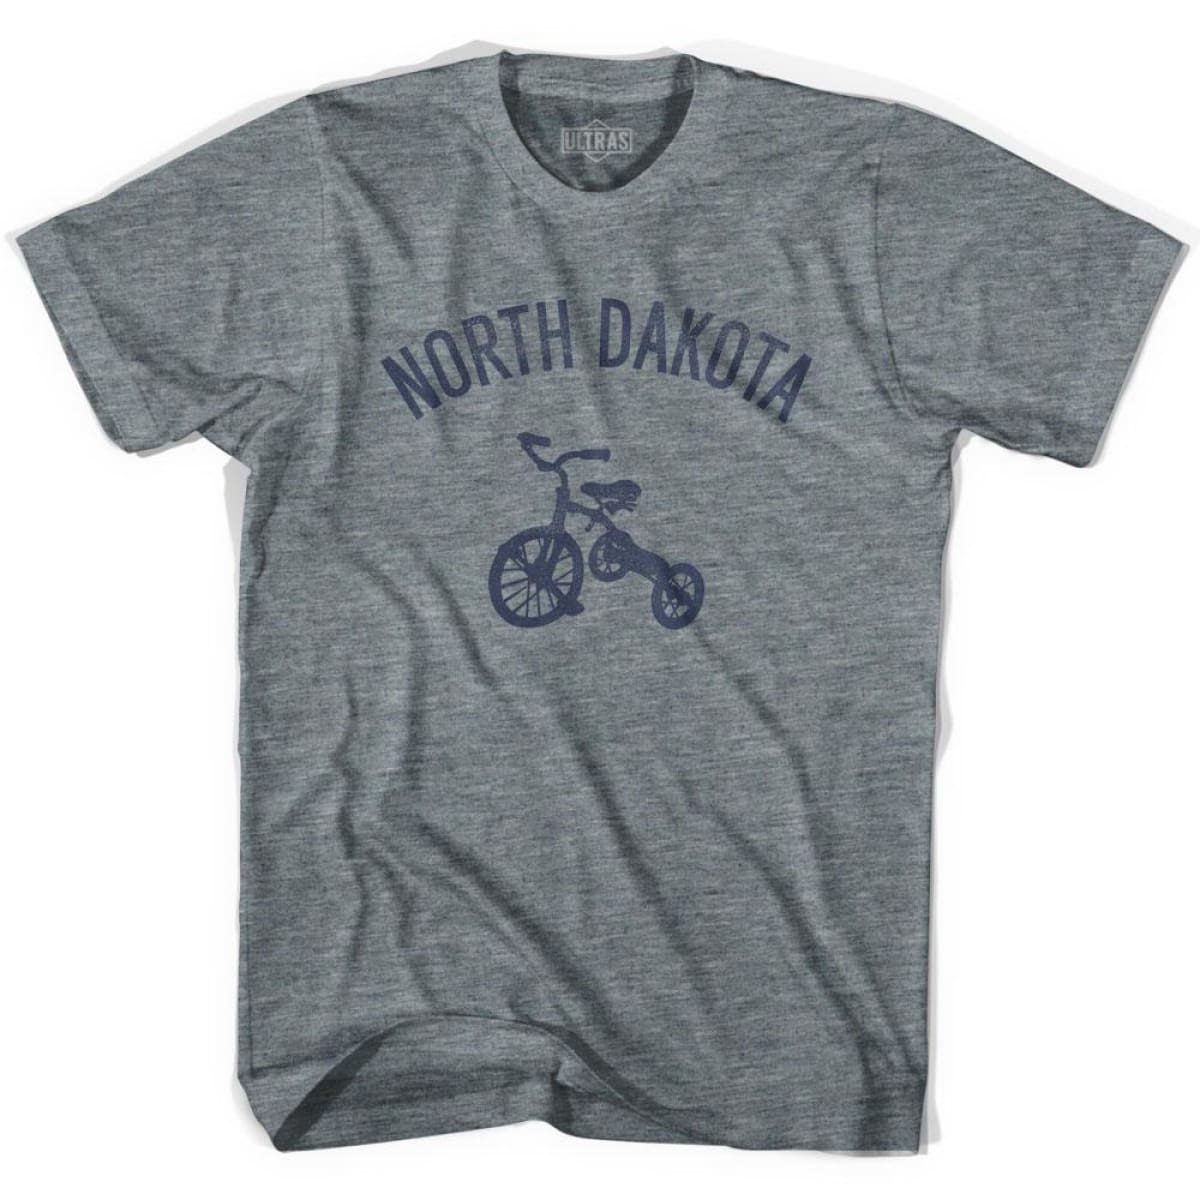 North Dakota State Tricycle Womens Tri-Blend T-shirt - Athletic Grey / Womens Small - Tricycle State